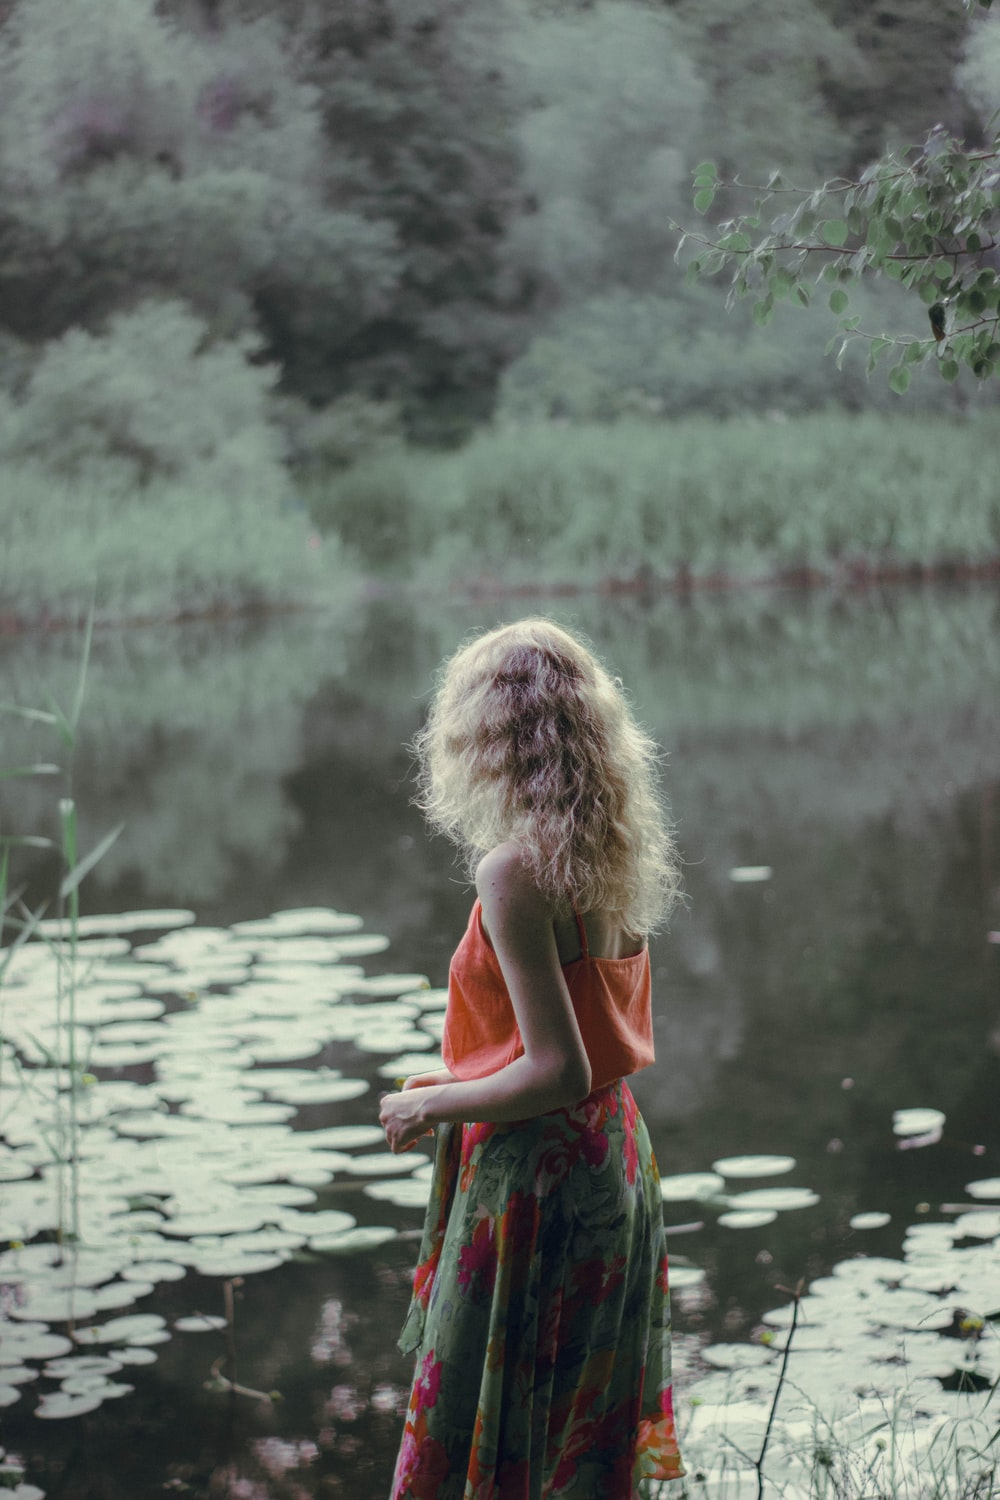 girl in red and green dress standing on water during daytime